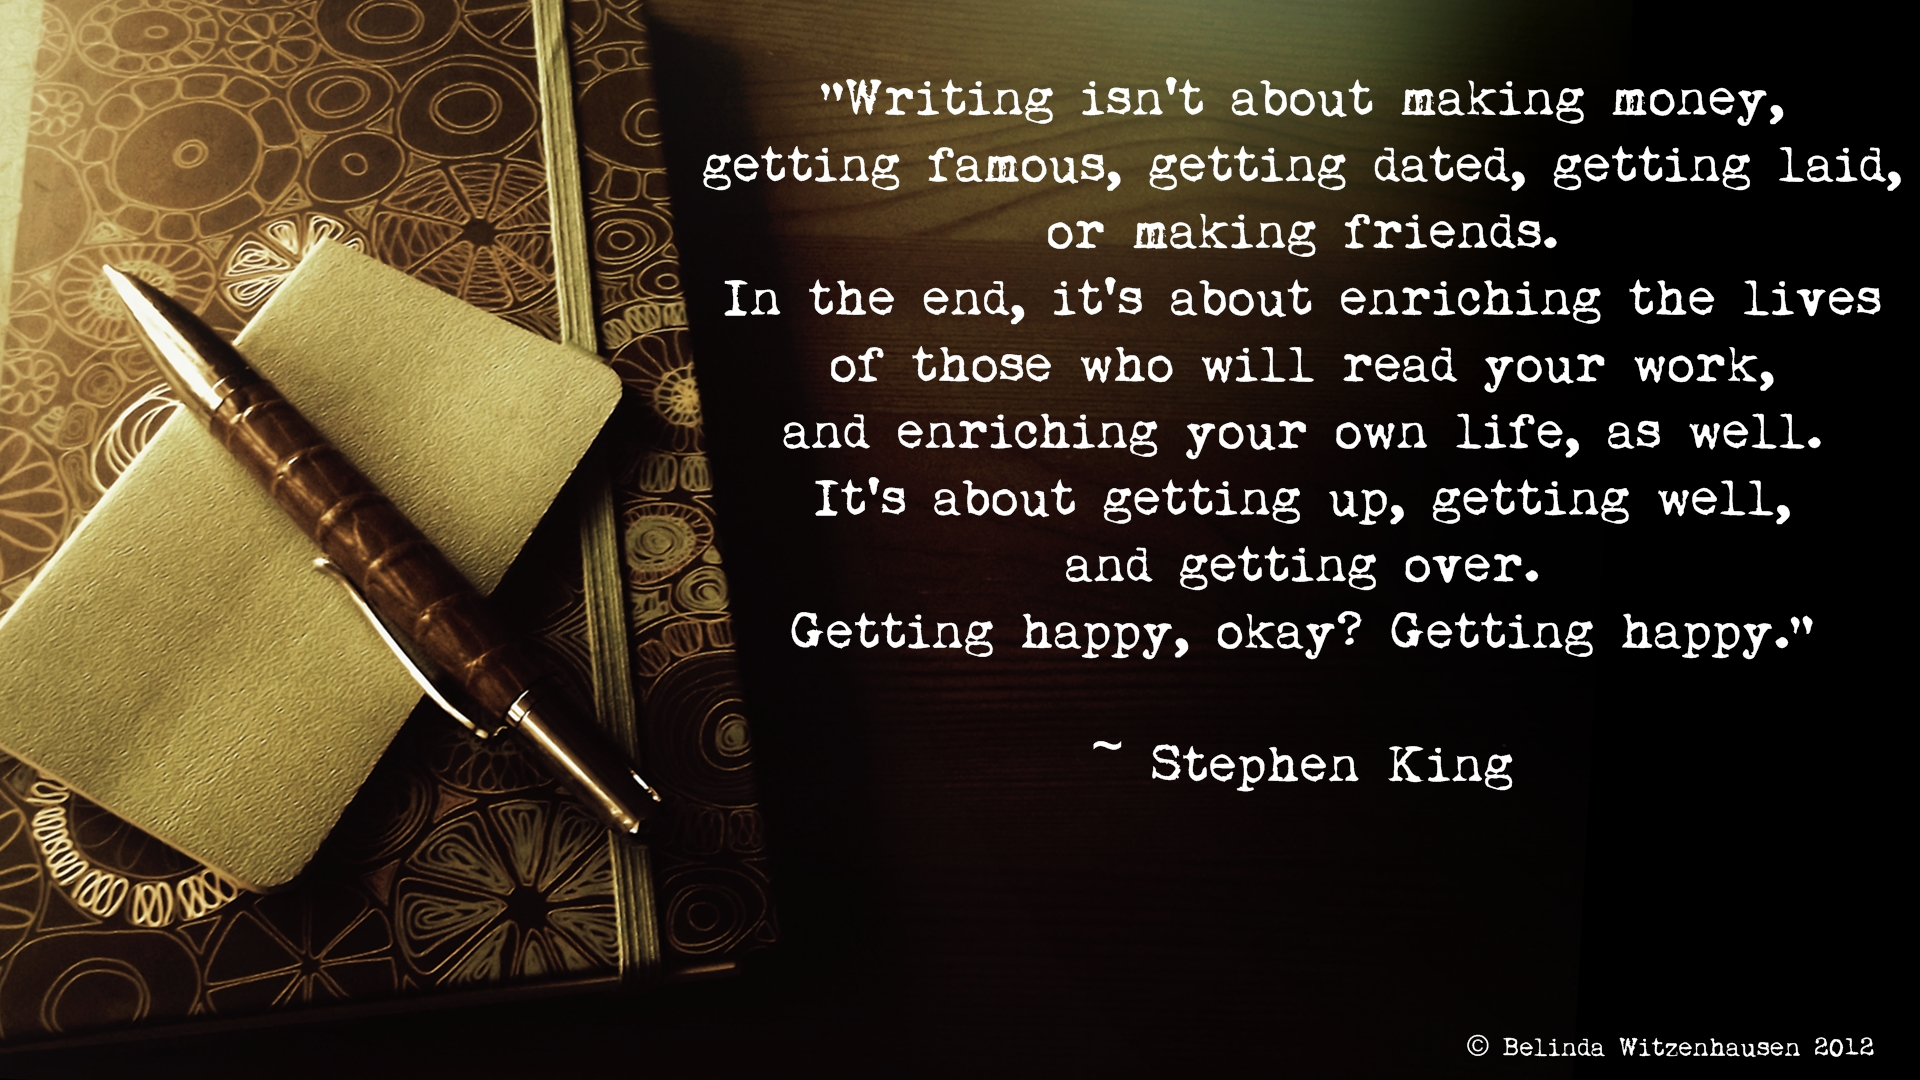 writing quotes stephen king 1 stephen king on writing: a memoir of the craft new york: simon & schuster, 2000 miriam e wells as.